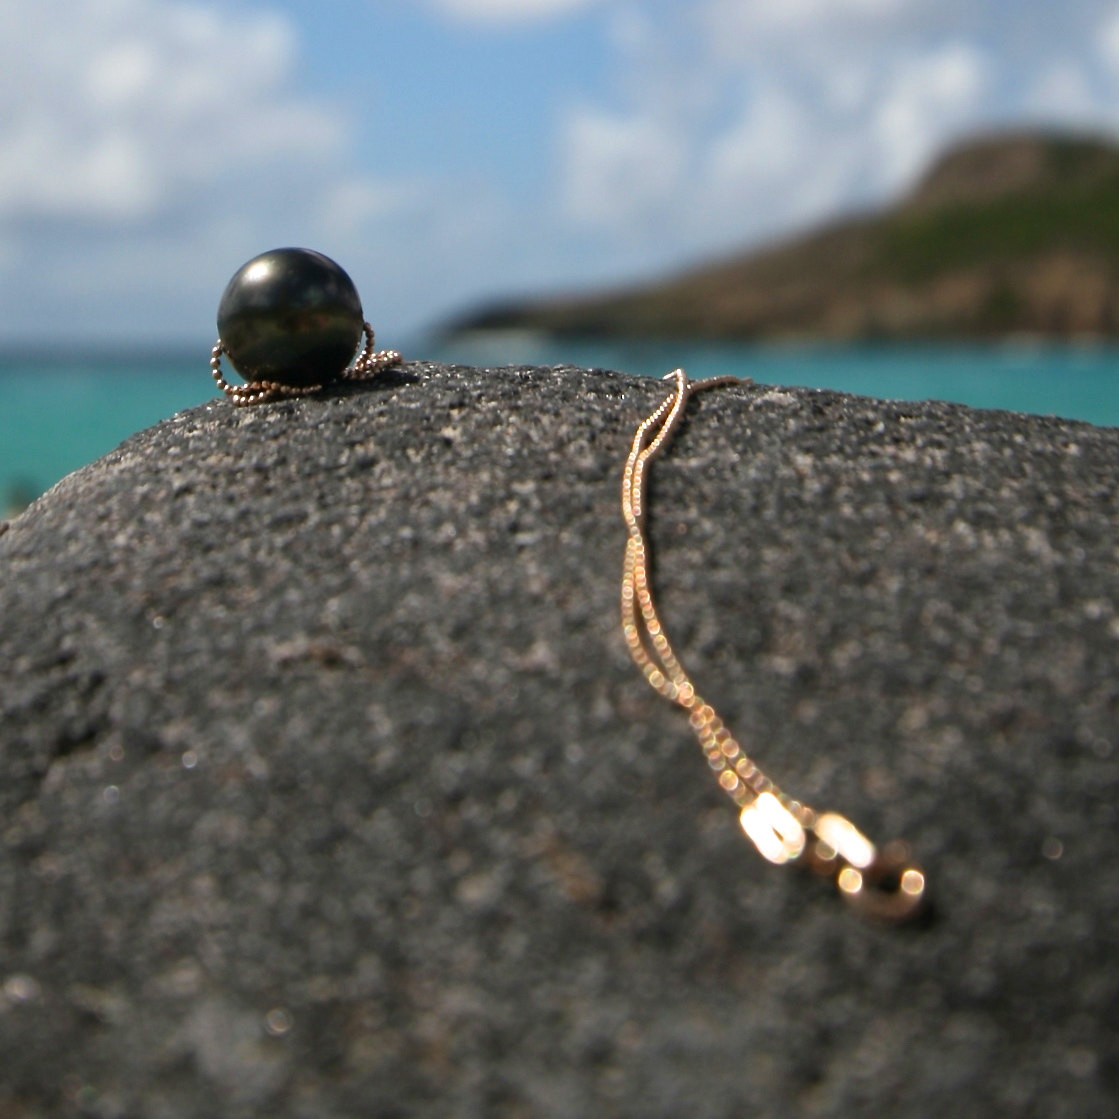 pearls chain St Barts jewelry